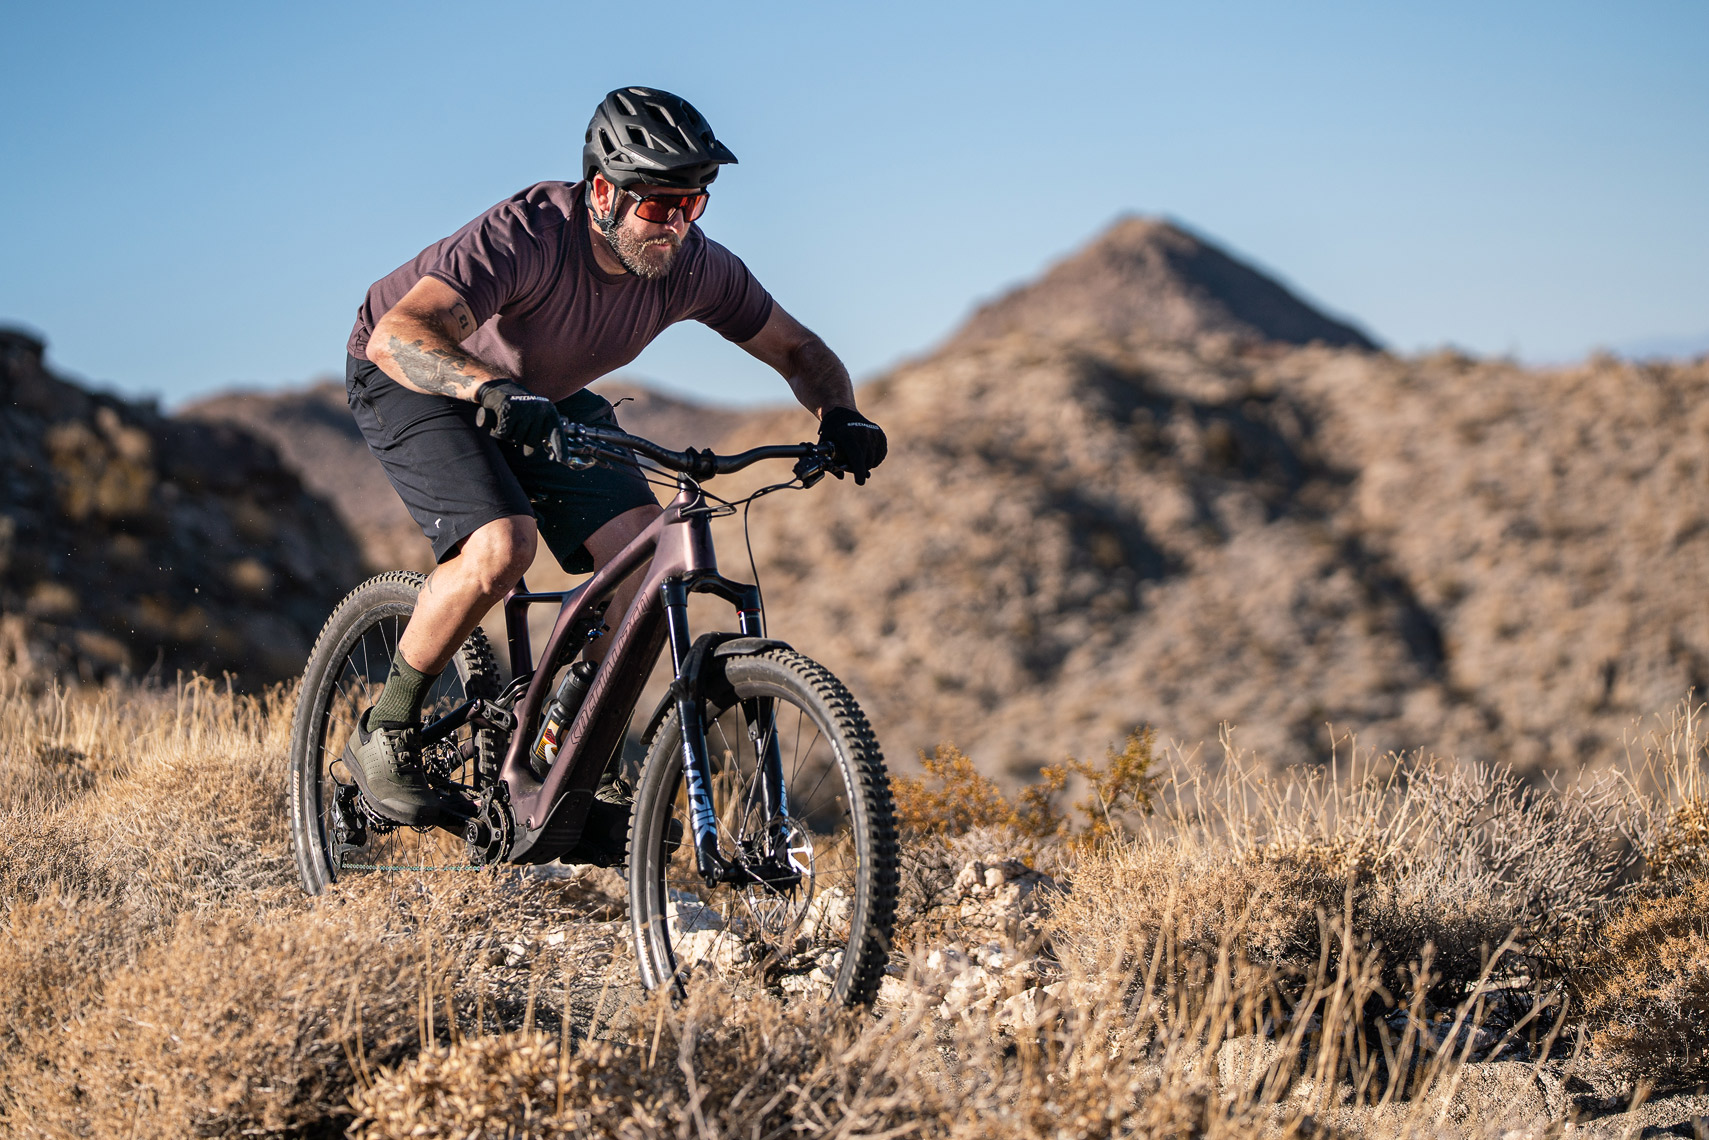 Specialized_S21_MTB_Clothing_Palm_Springs_VanWeelden-307